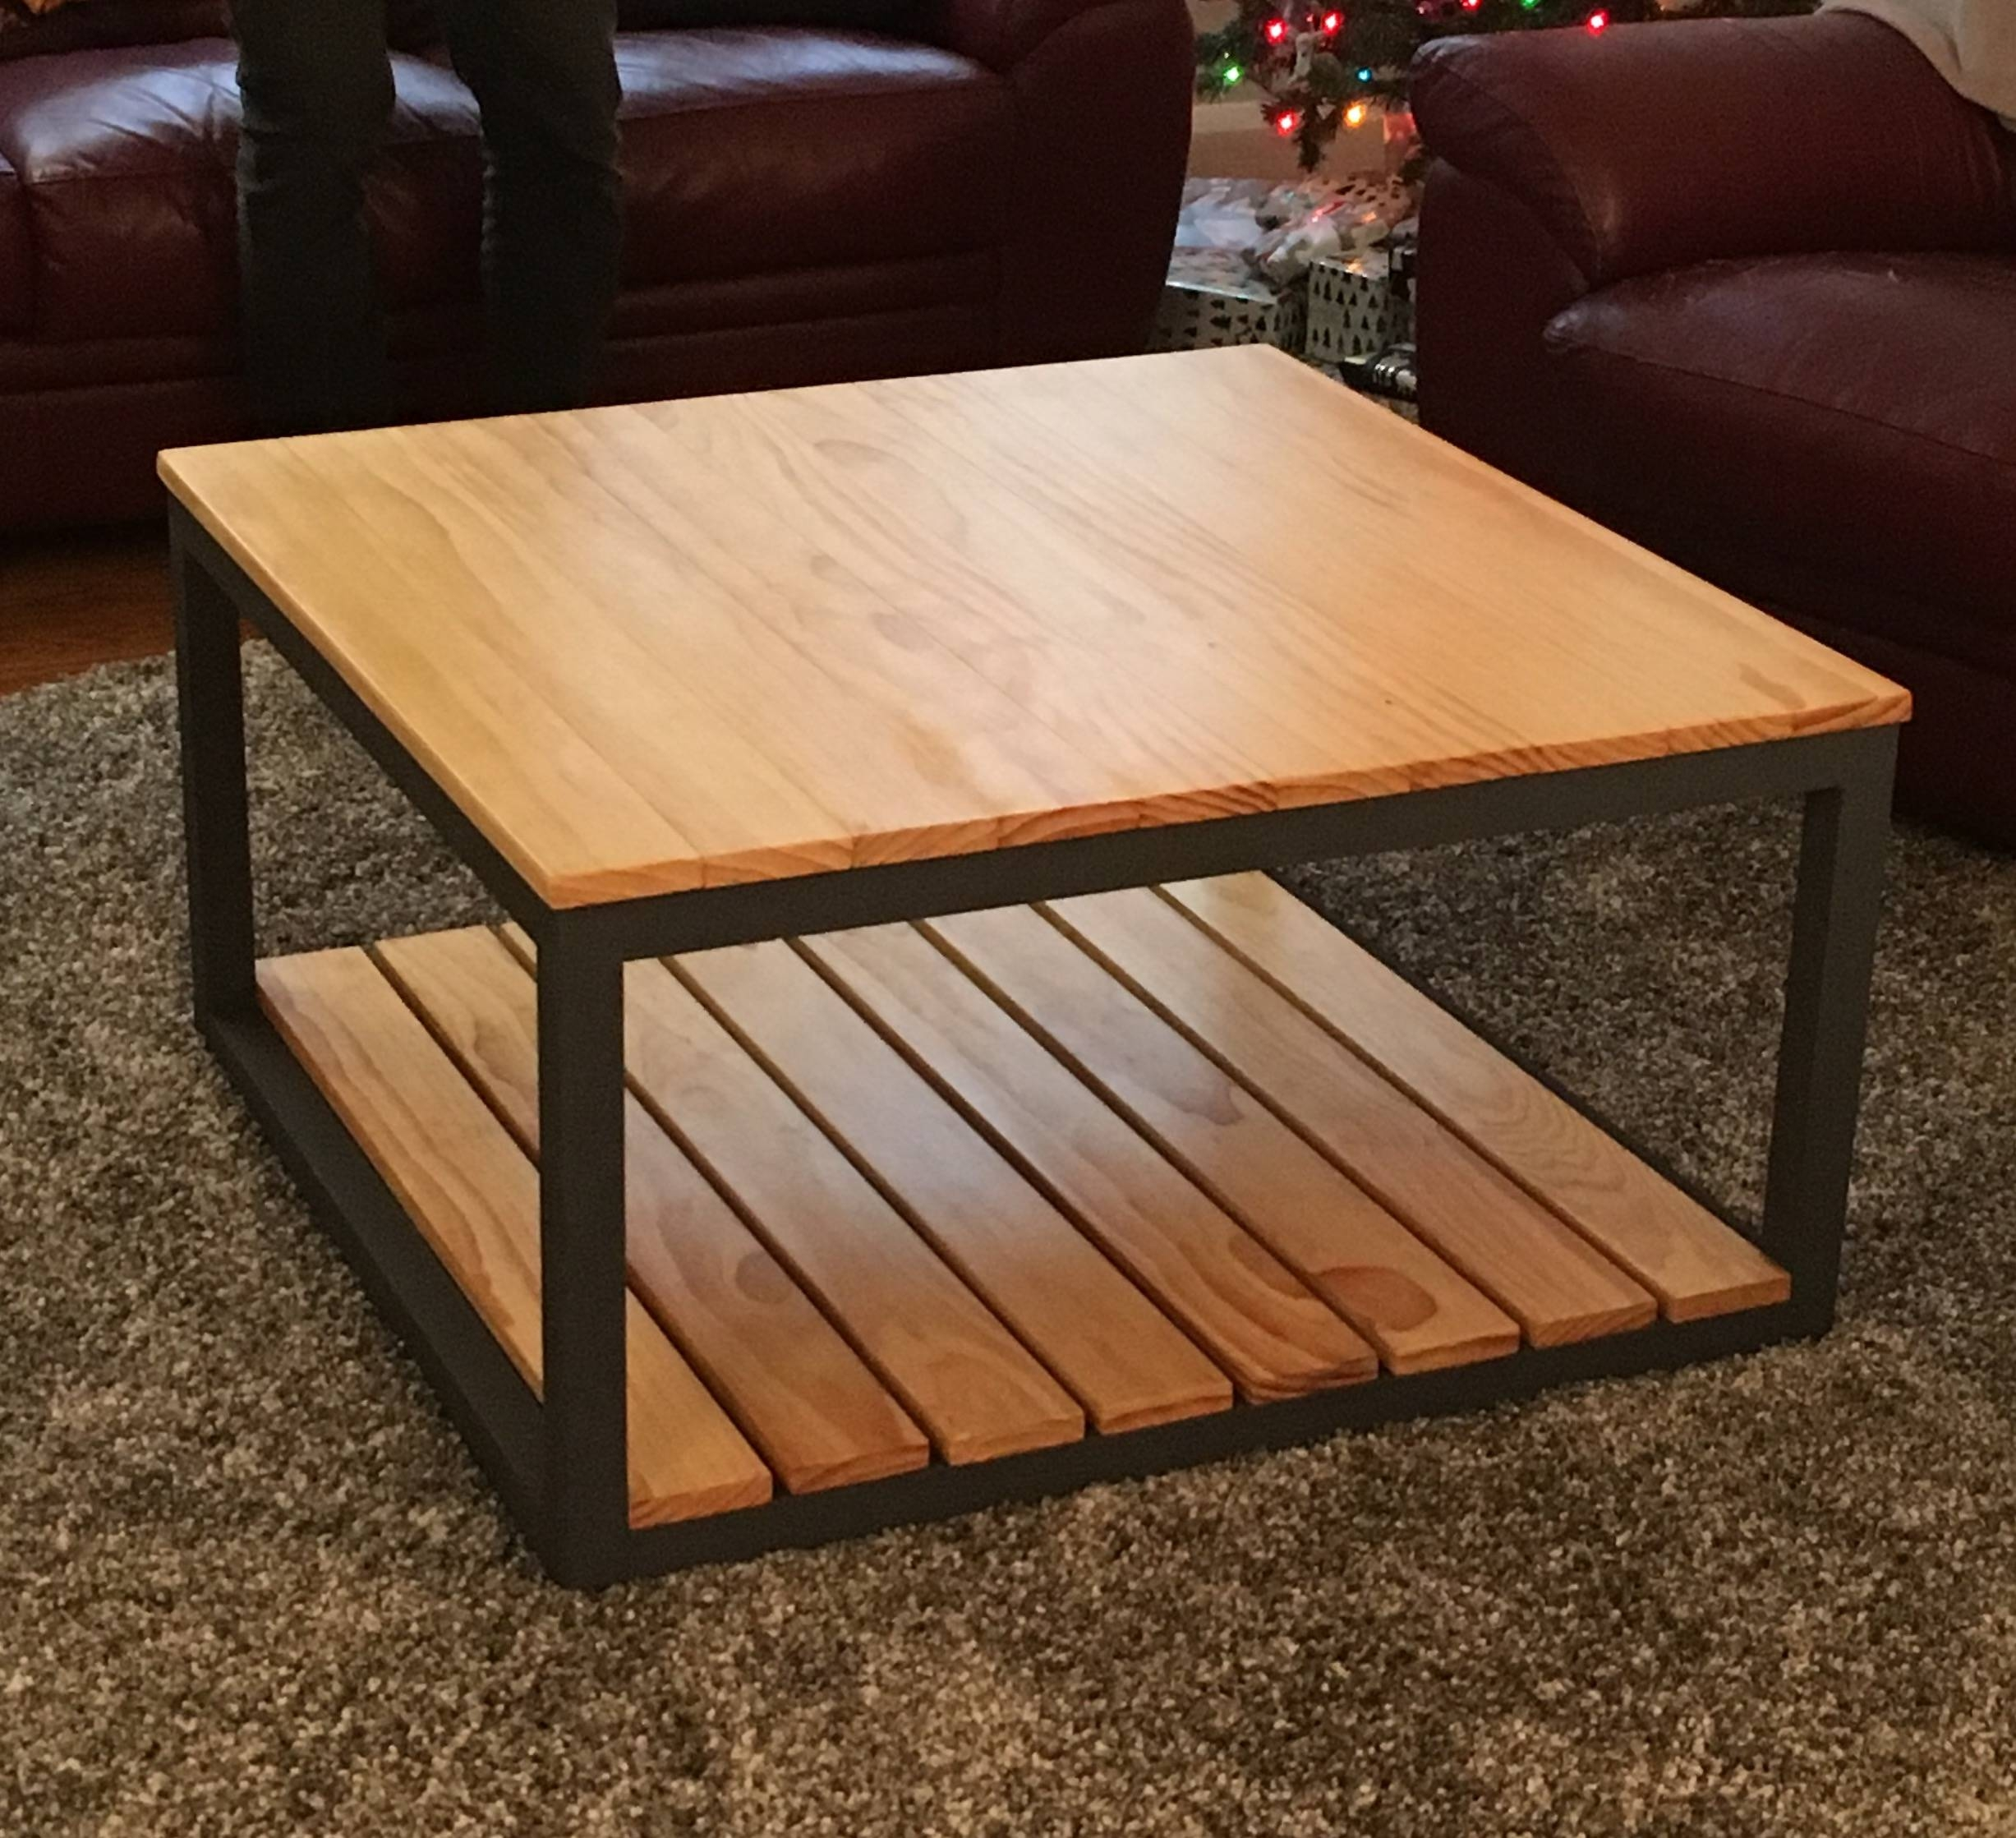 Ana White | Modified Industrial Style Coffee Table W/ Bottom Shelf Pertaining To Coffee Table Industrial Style (View 7 of 30)